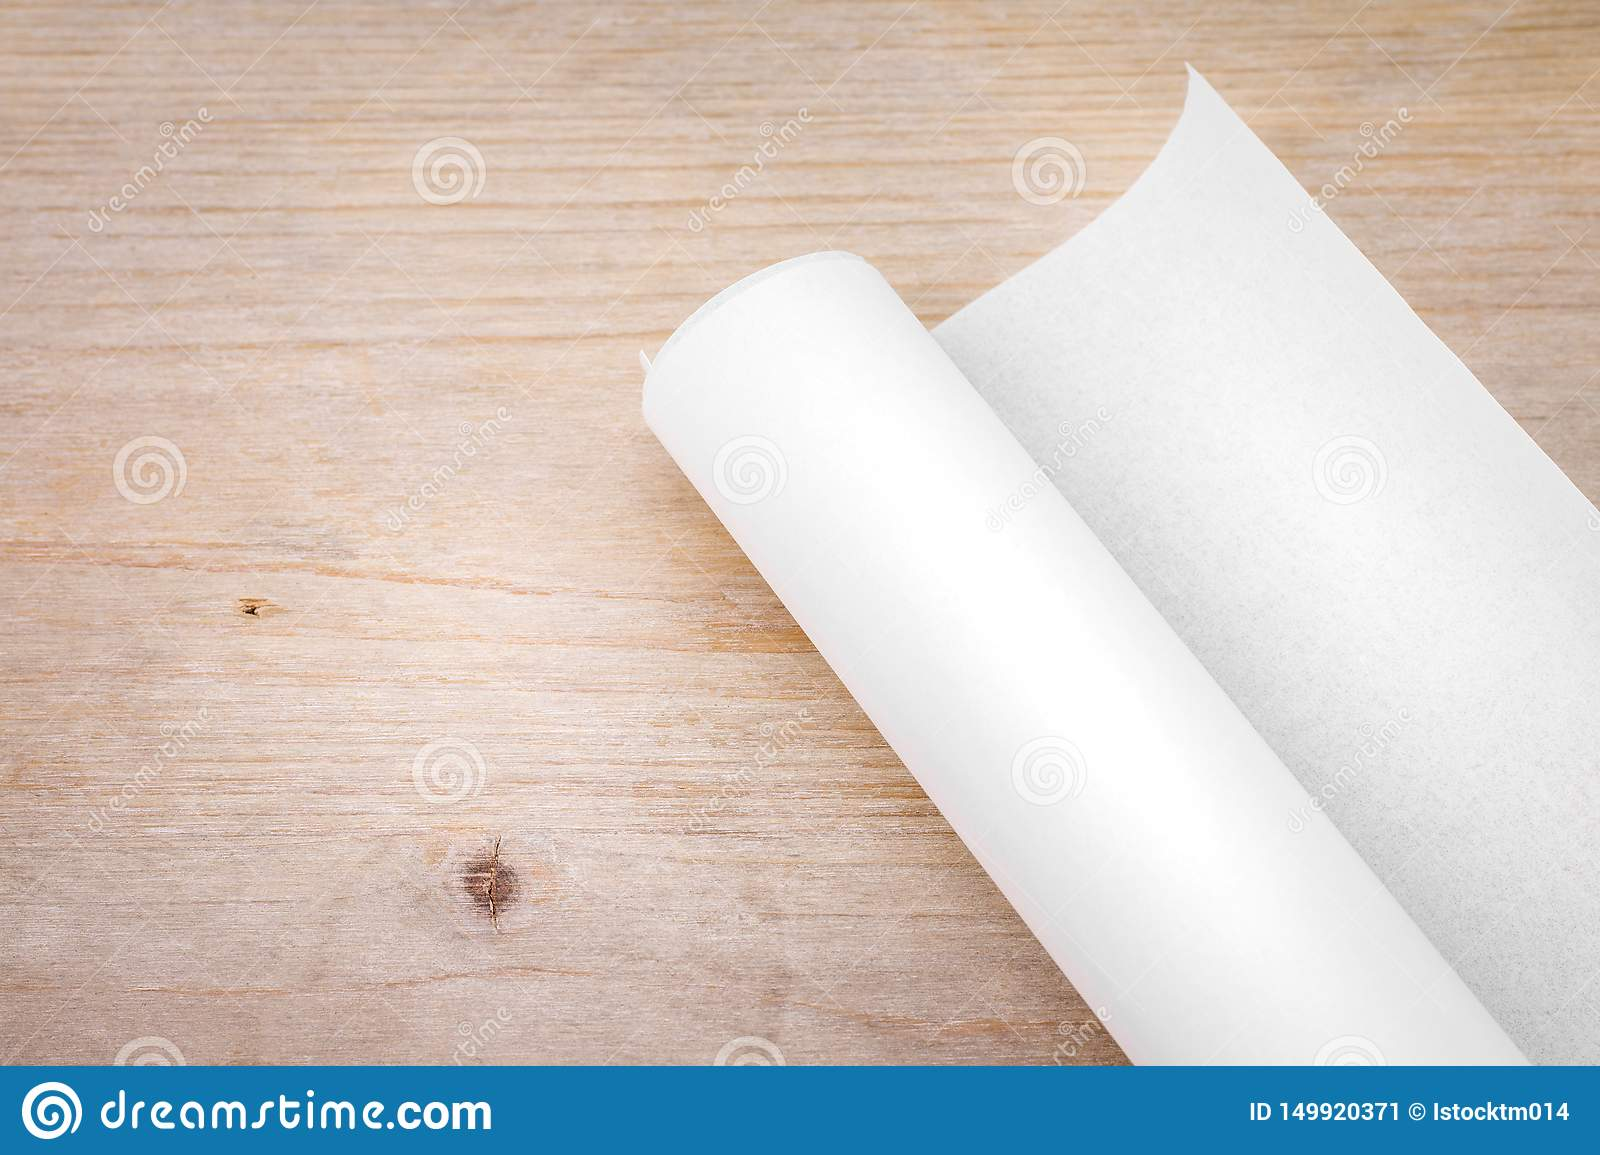 Roll of paper on wood table background. Engineer blueprint for draft work. Blank document for your design